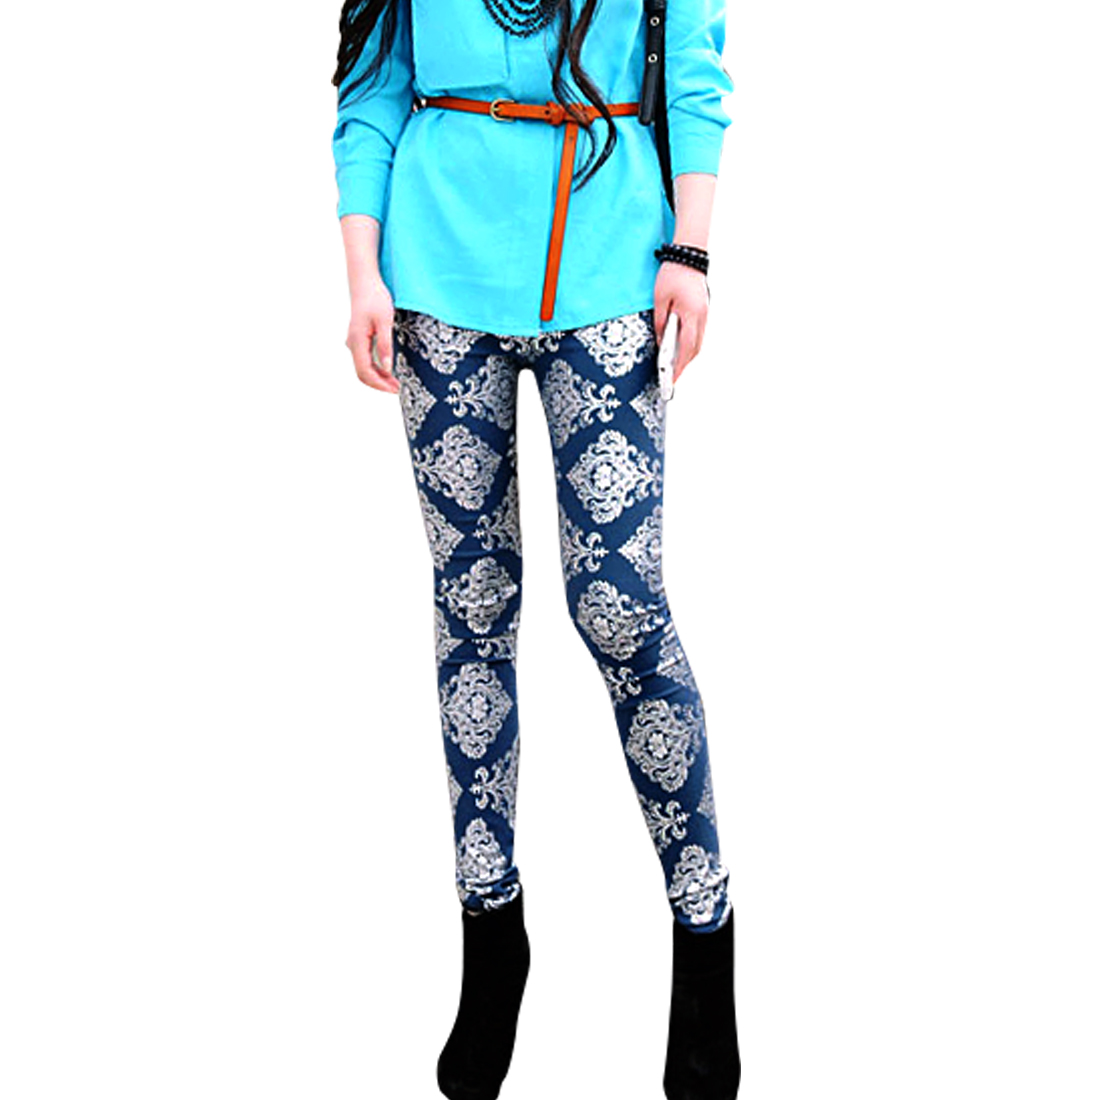 Ladies Elastic Waist Paisley Prints Leggings Royal Blue XS